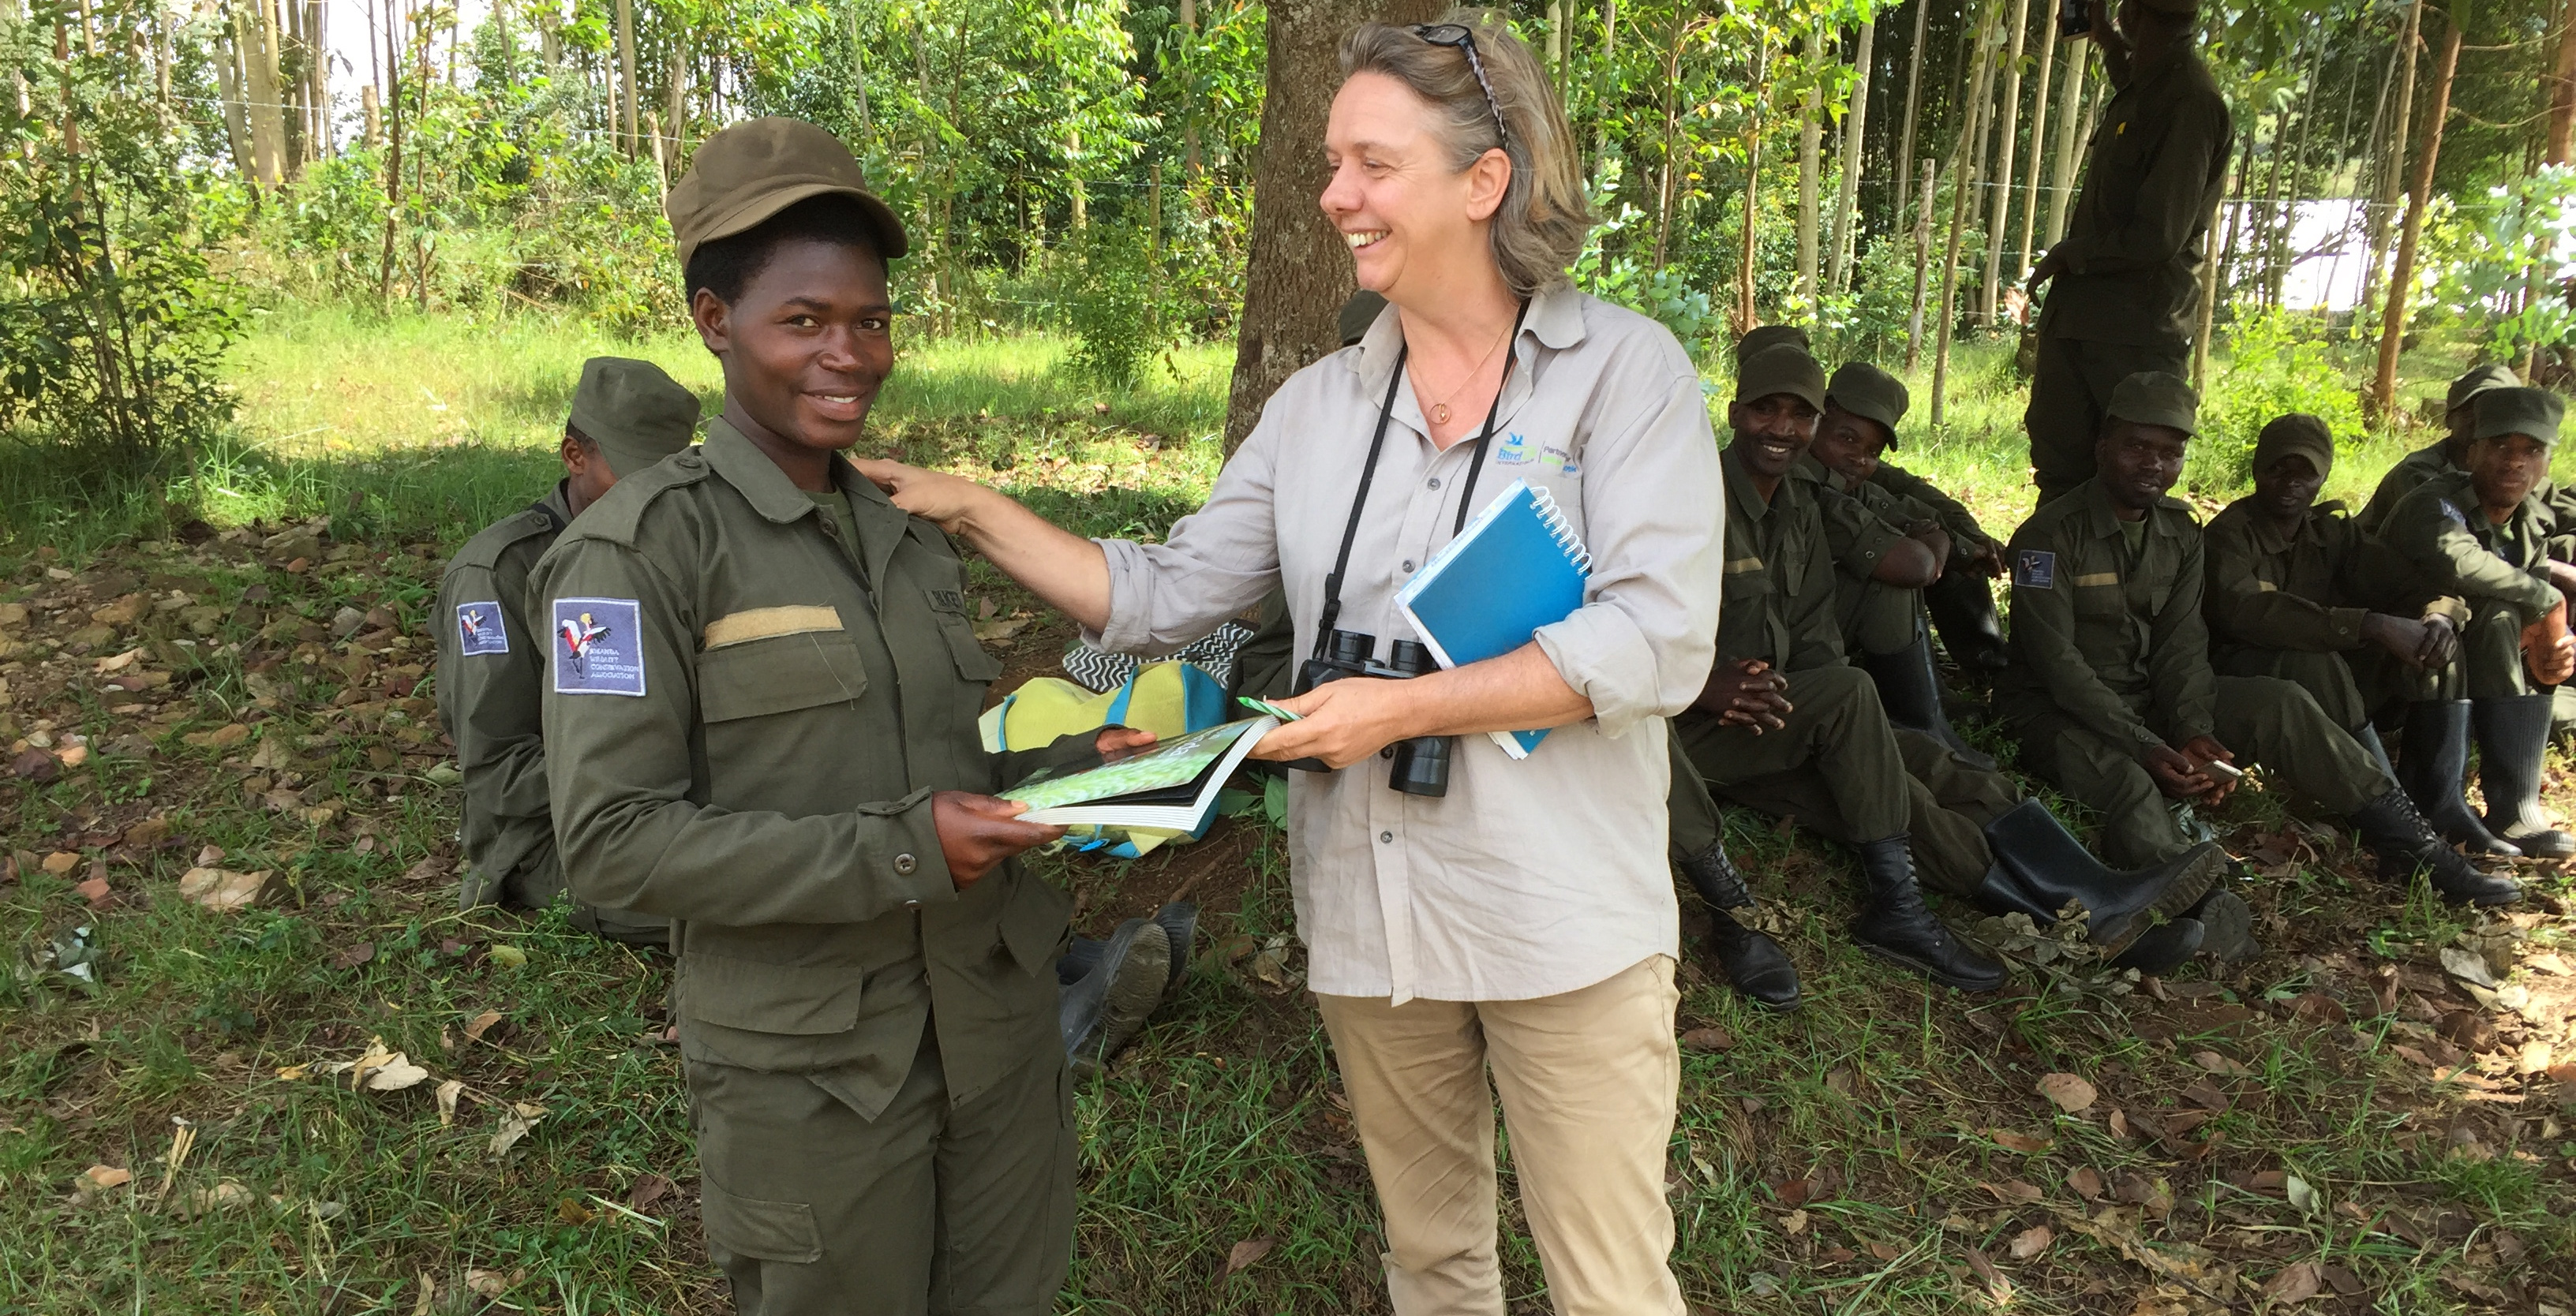 Regional Implementation Team leader stands smiling with marsh ranger and more marsh rangers sit behind them